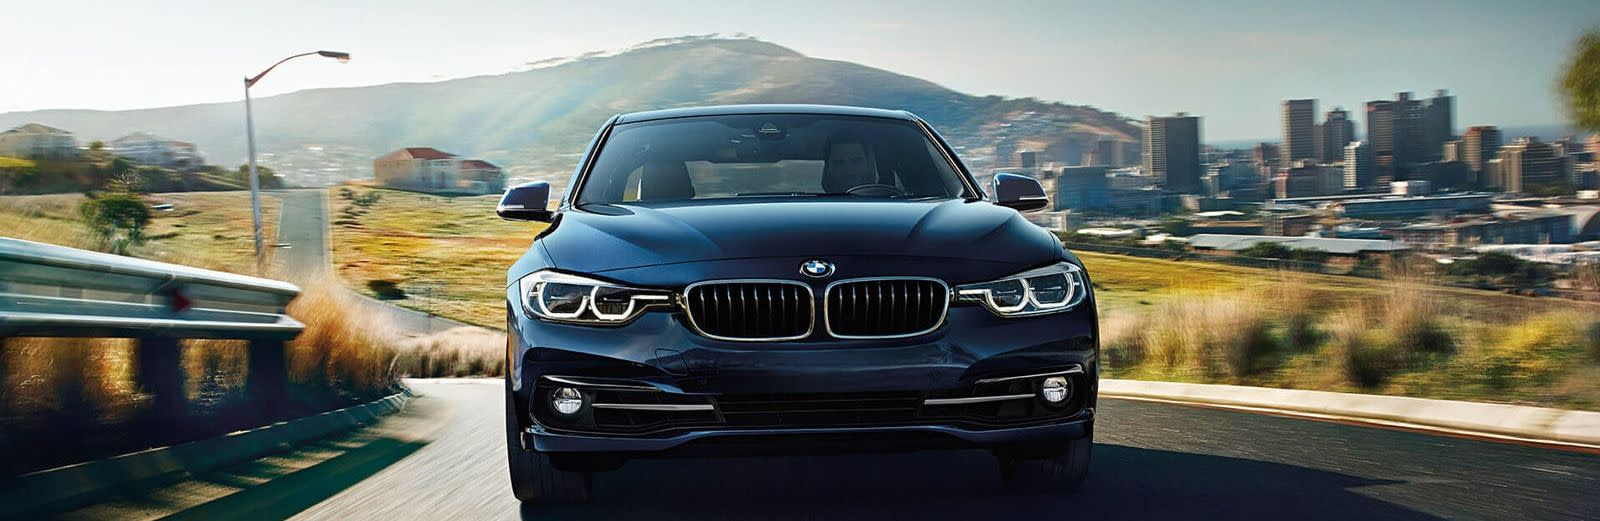 2018 BMW 3 Series Leasing near Chicago, IL